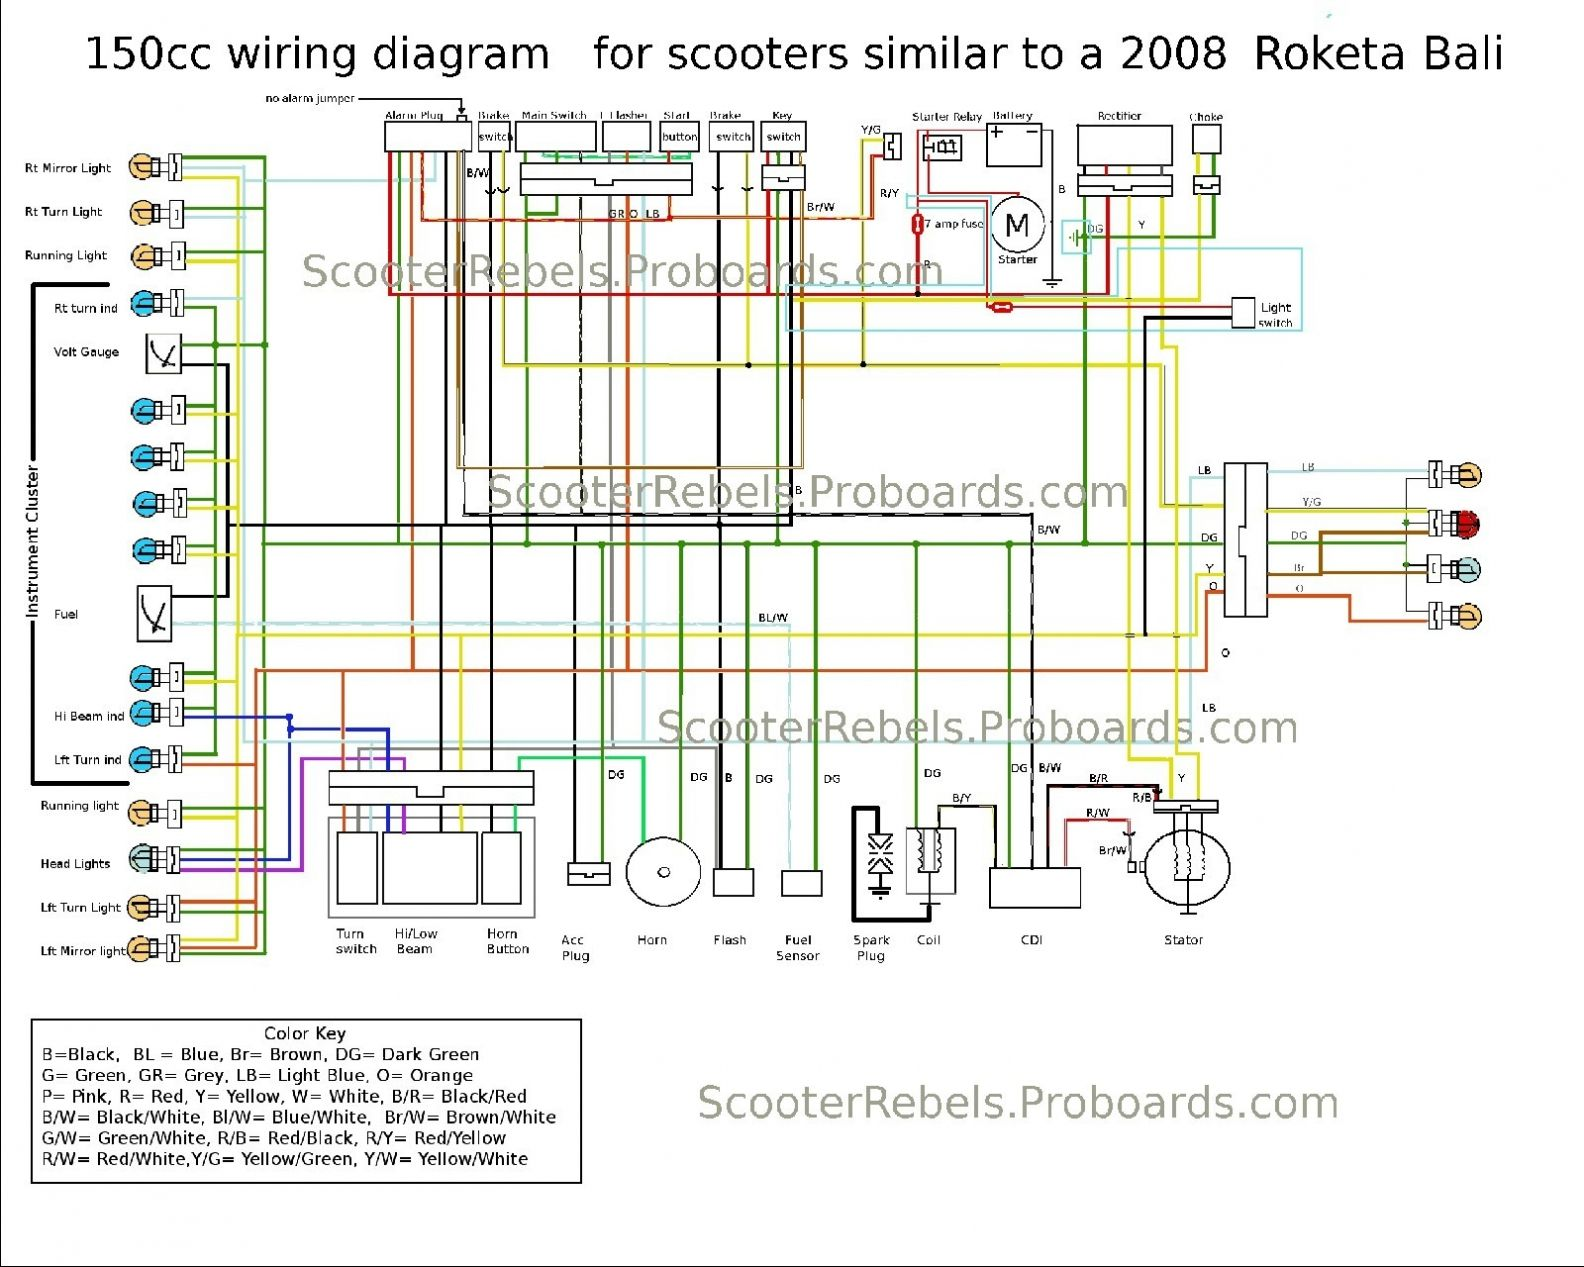 C87 Dodge Ke Controller Wiring Diagram | ePANEL Digital Books on controller cable, controller battery, controller cabinet, controller accessories, controller computer diagram,